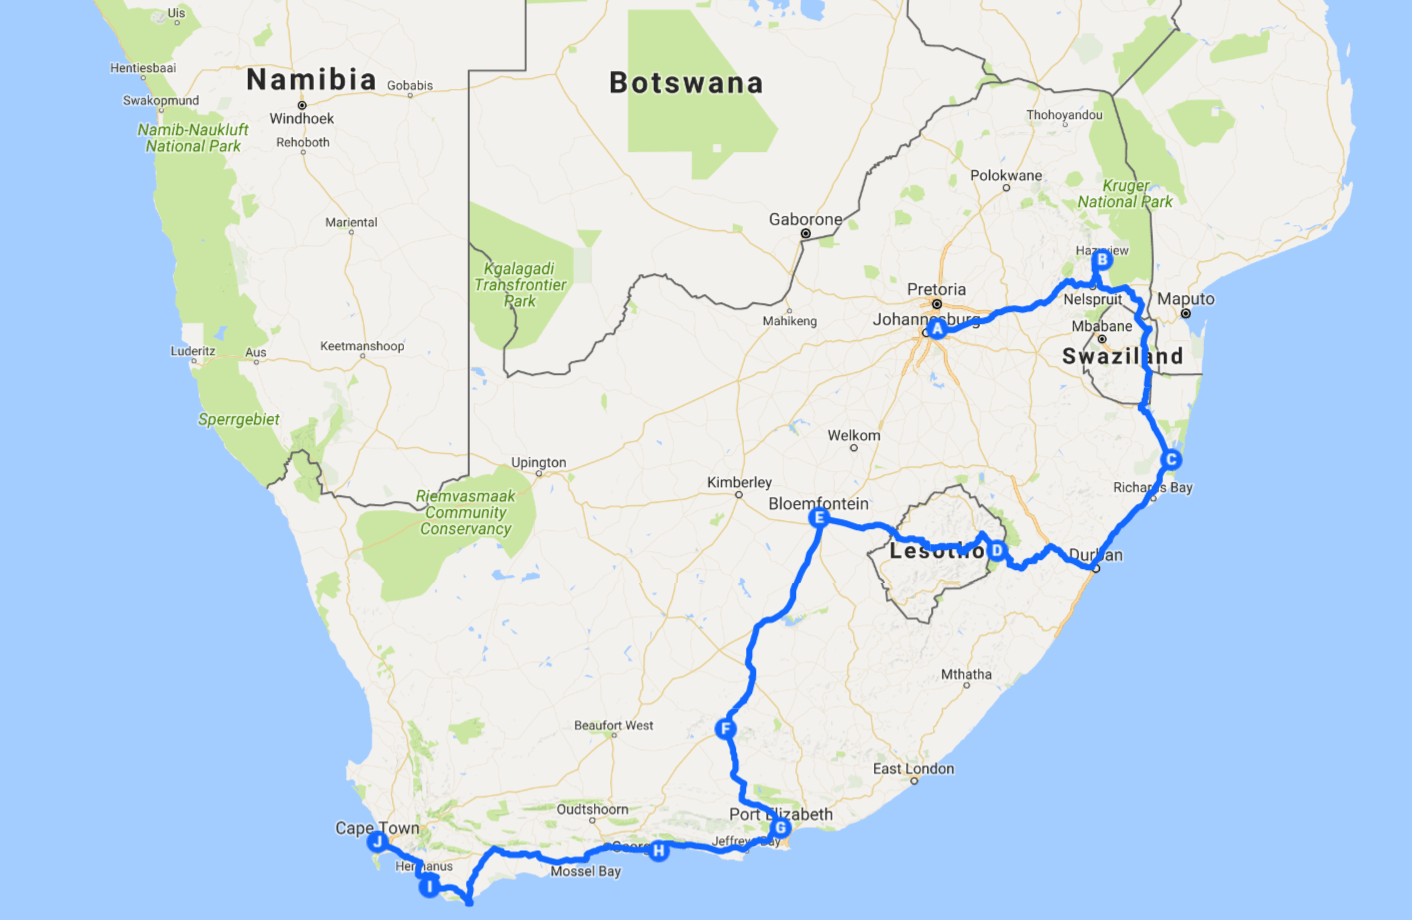 South Africa Road Trip Route